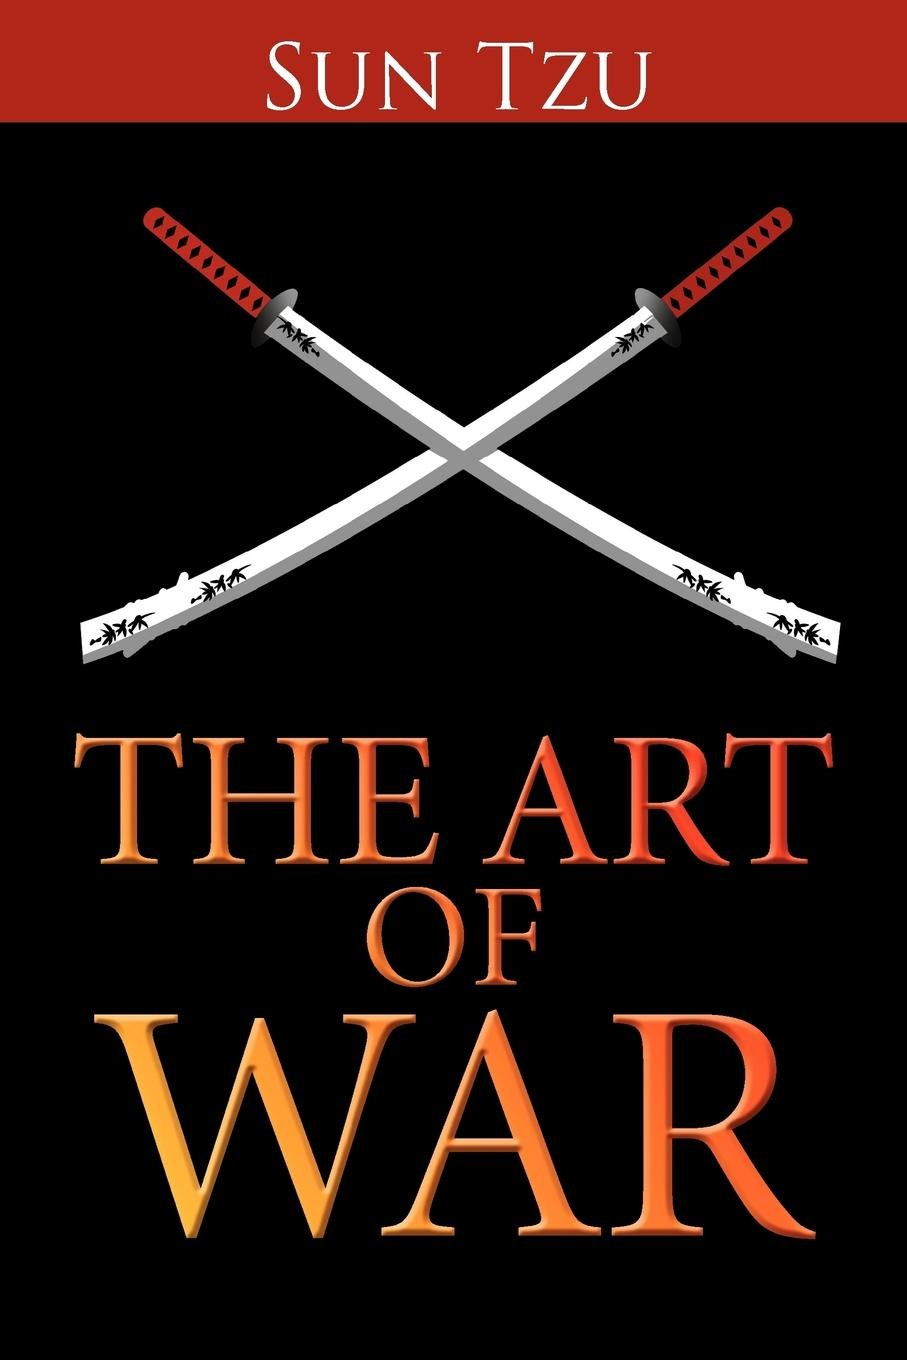 art of war summary Art of war, chapter 1 - laying plans, the oldest military treatise in the world is sun tzu art of war, translated from the chinese by mr lionel giles.